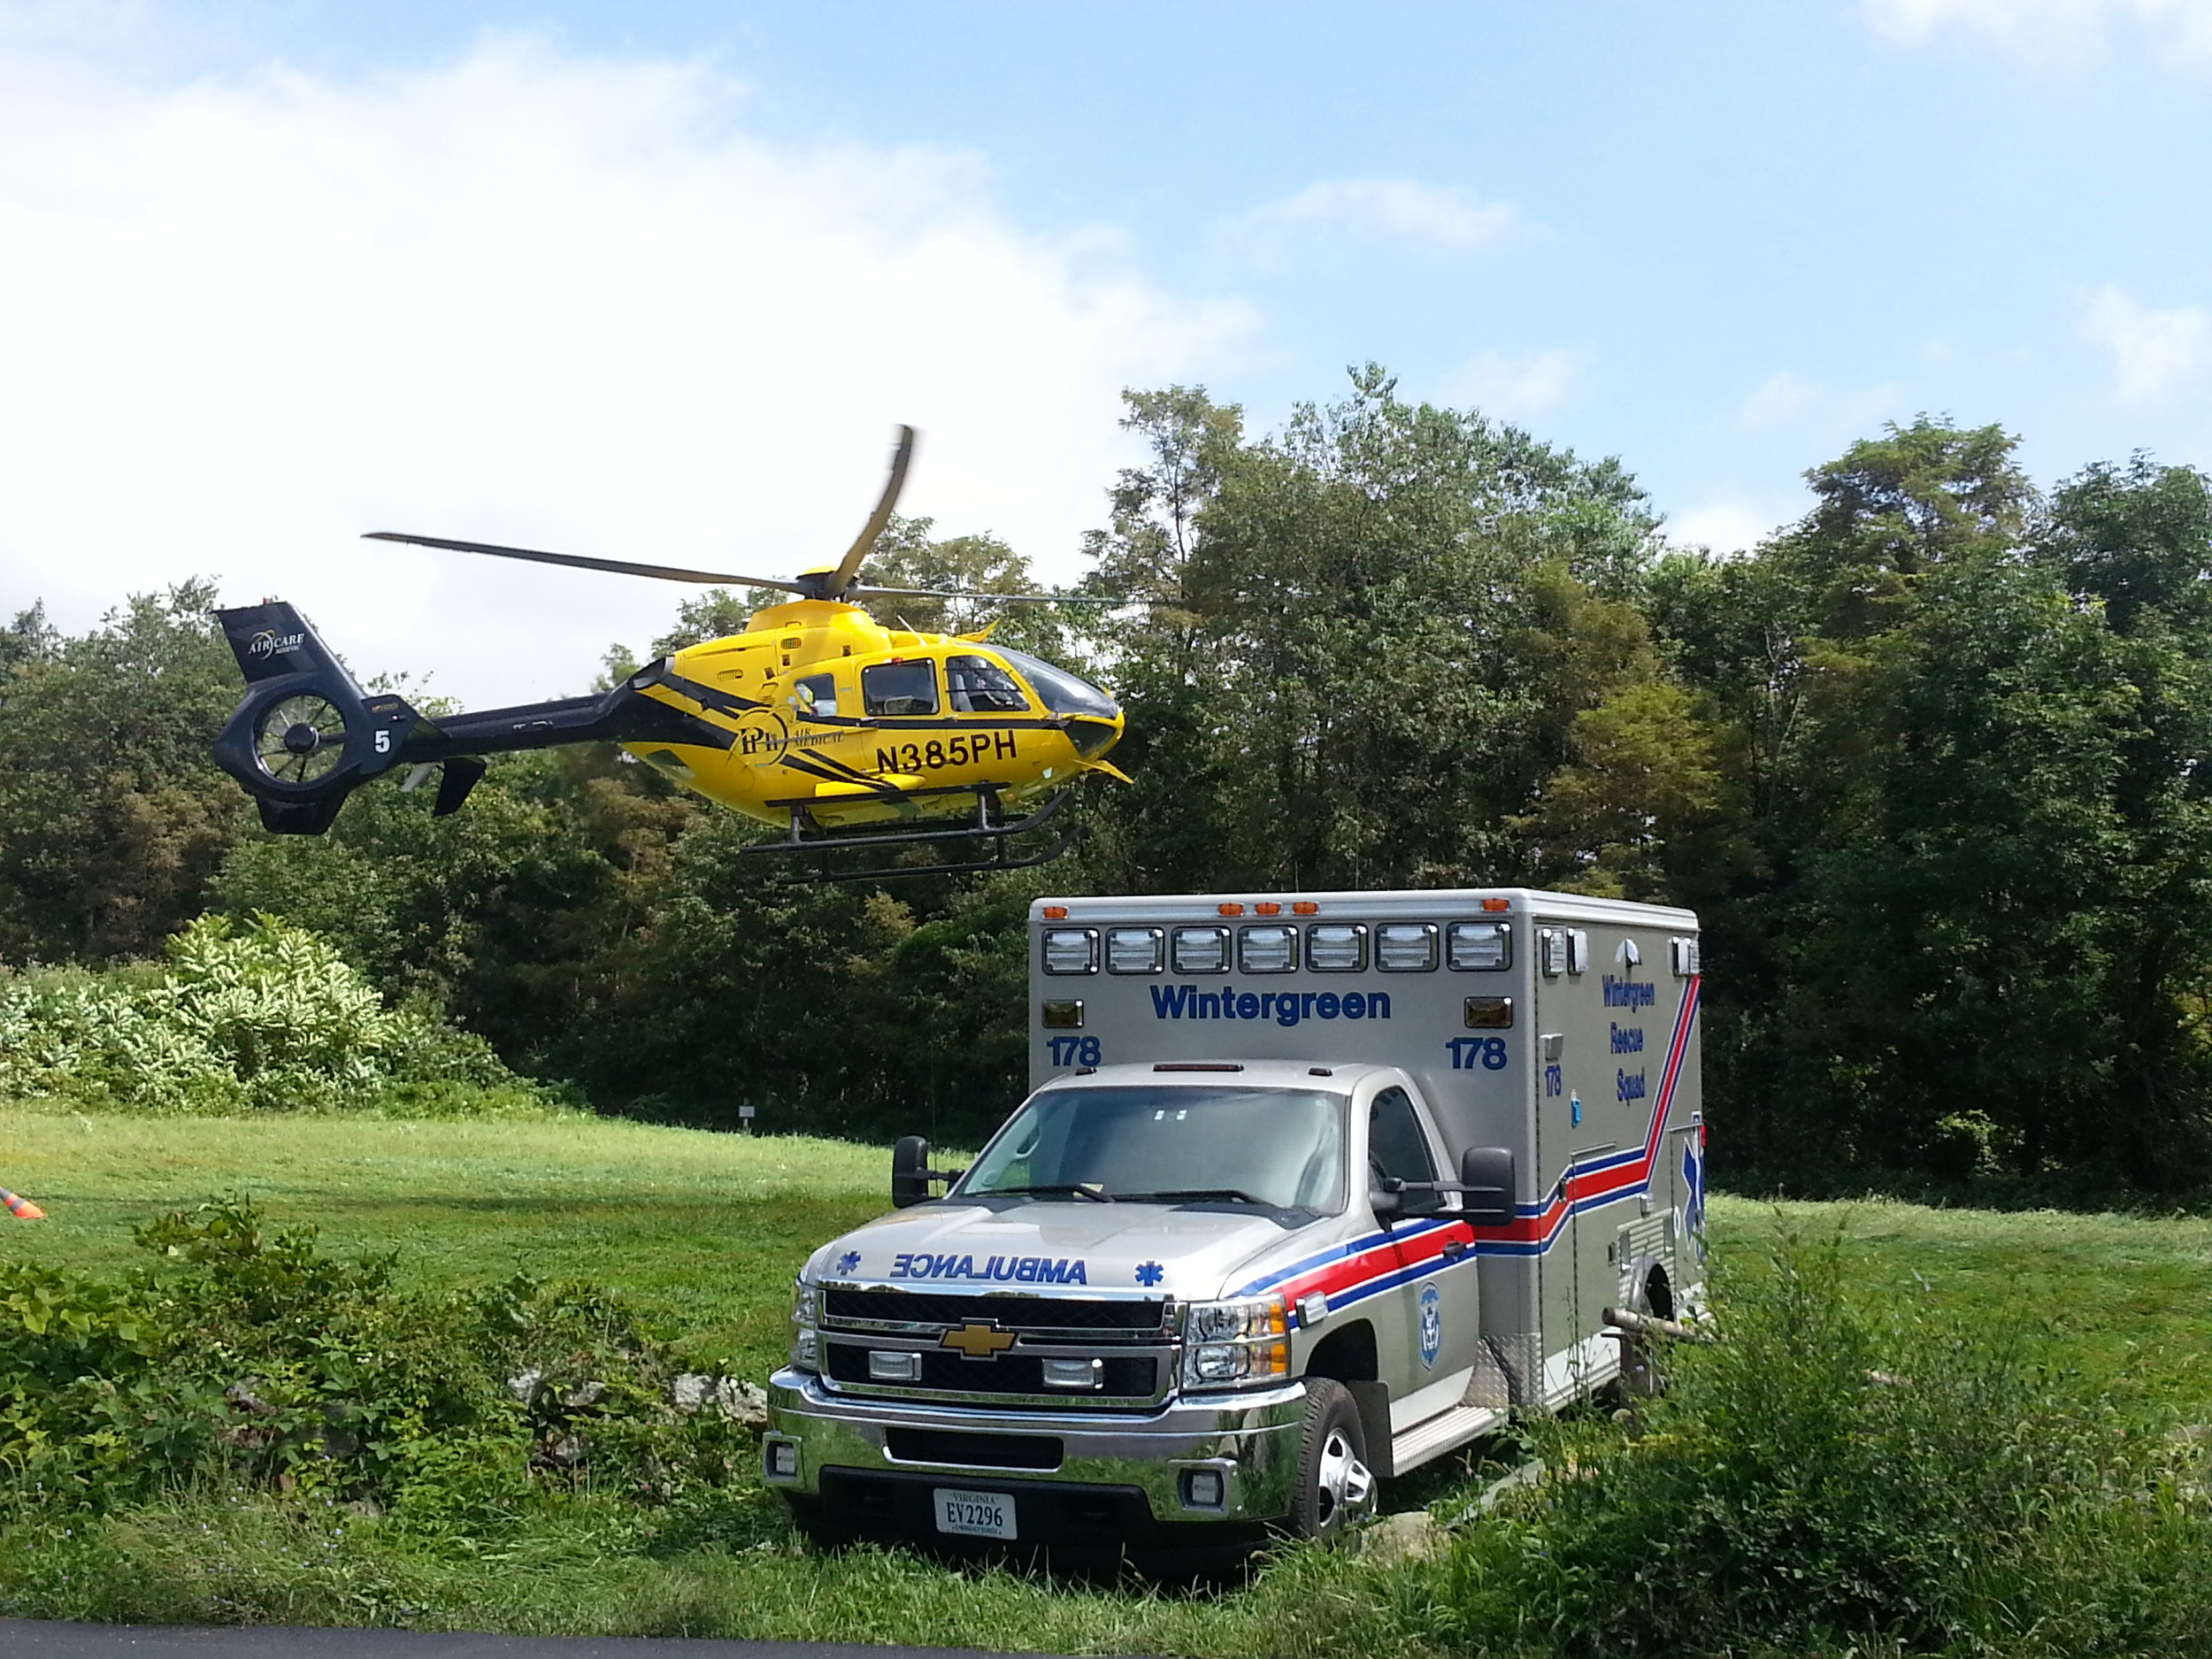 The Reeds Gap landing zone is one of four established landing zones utilized by Wintergreen Fire & Rescue.